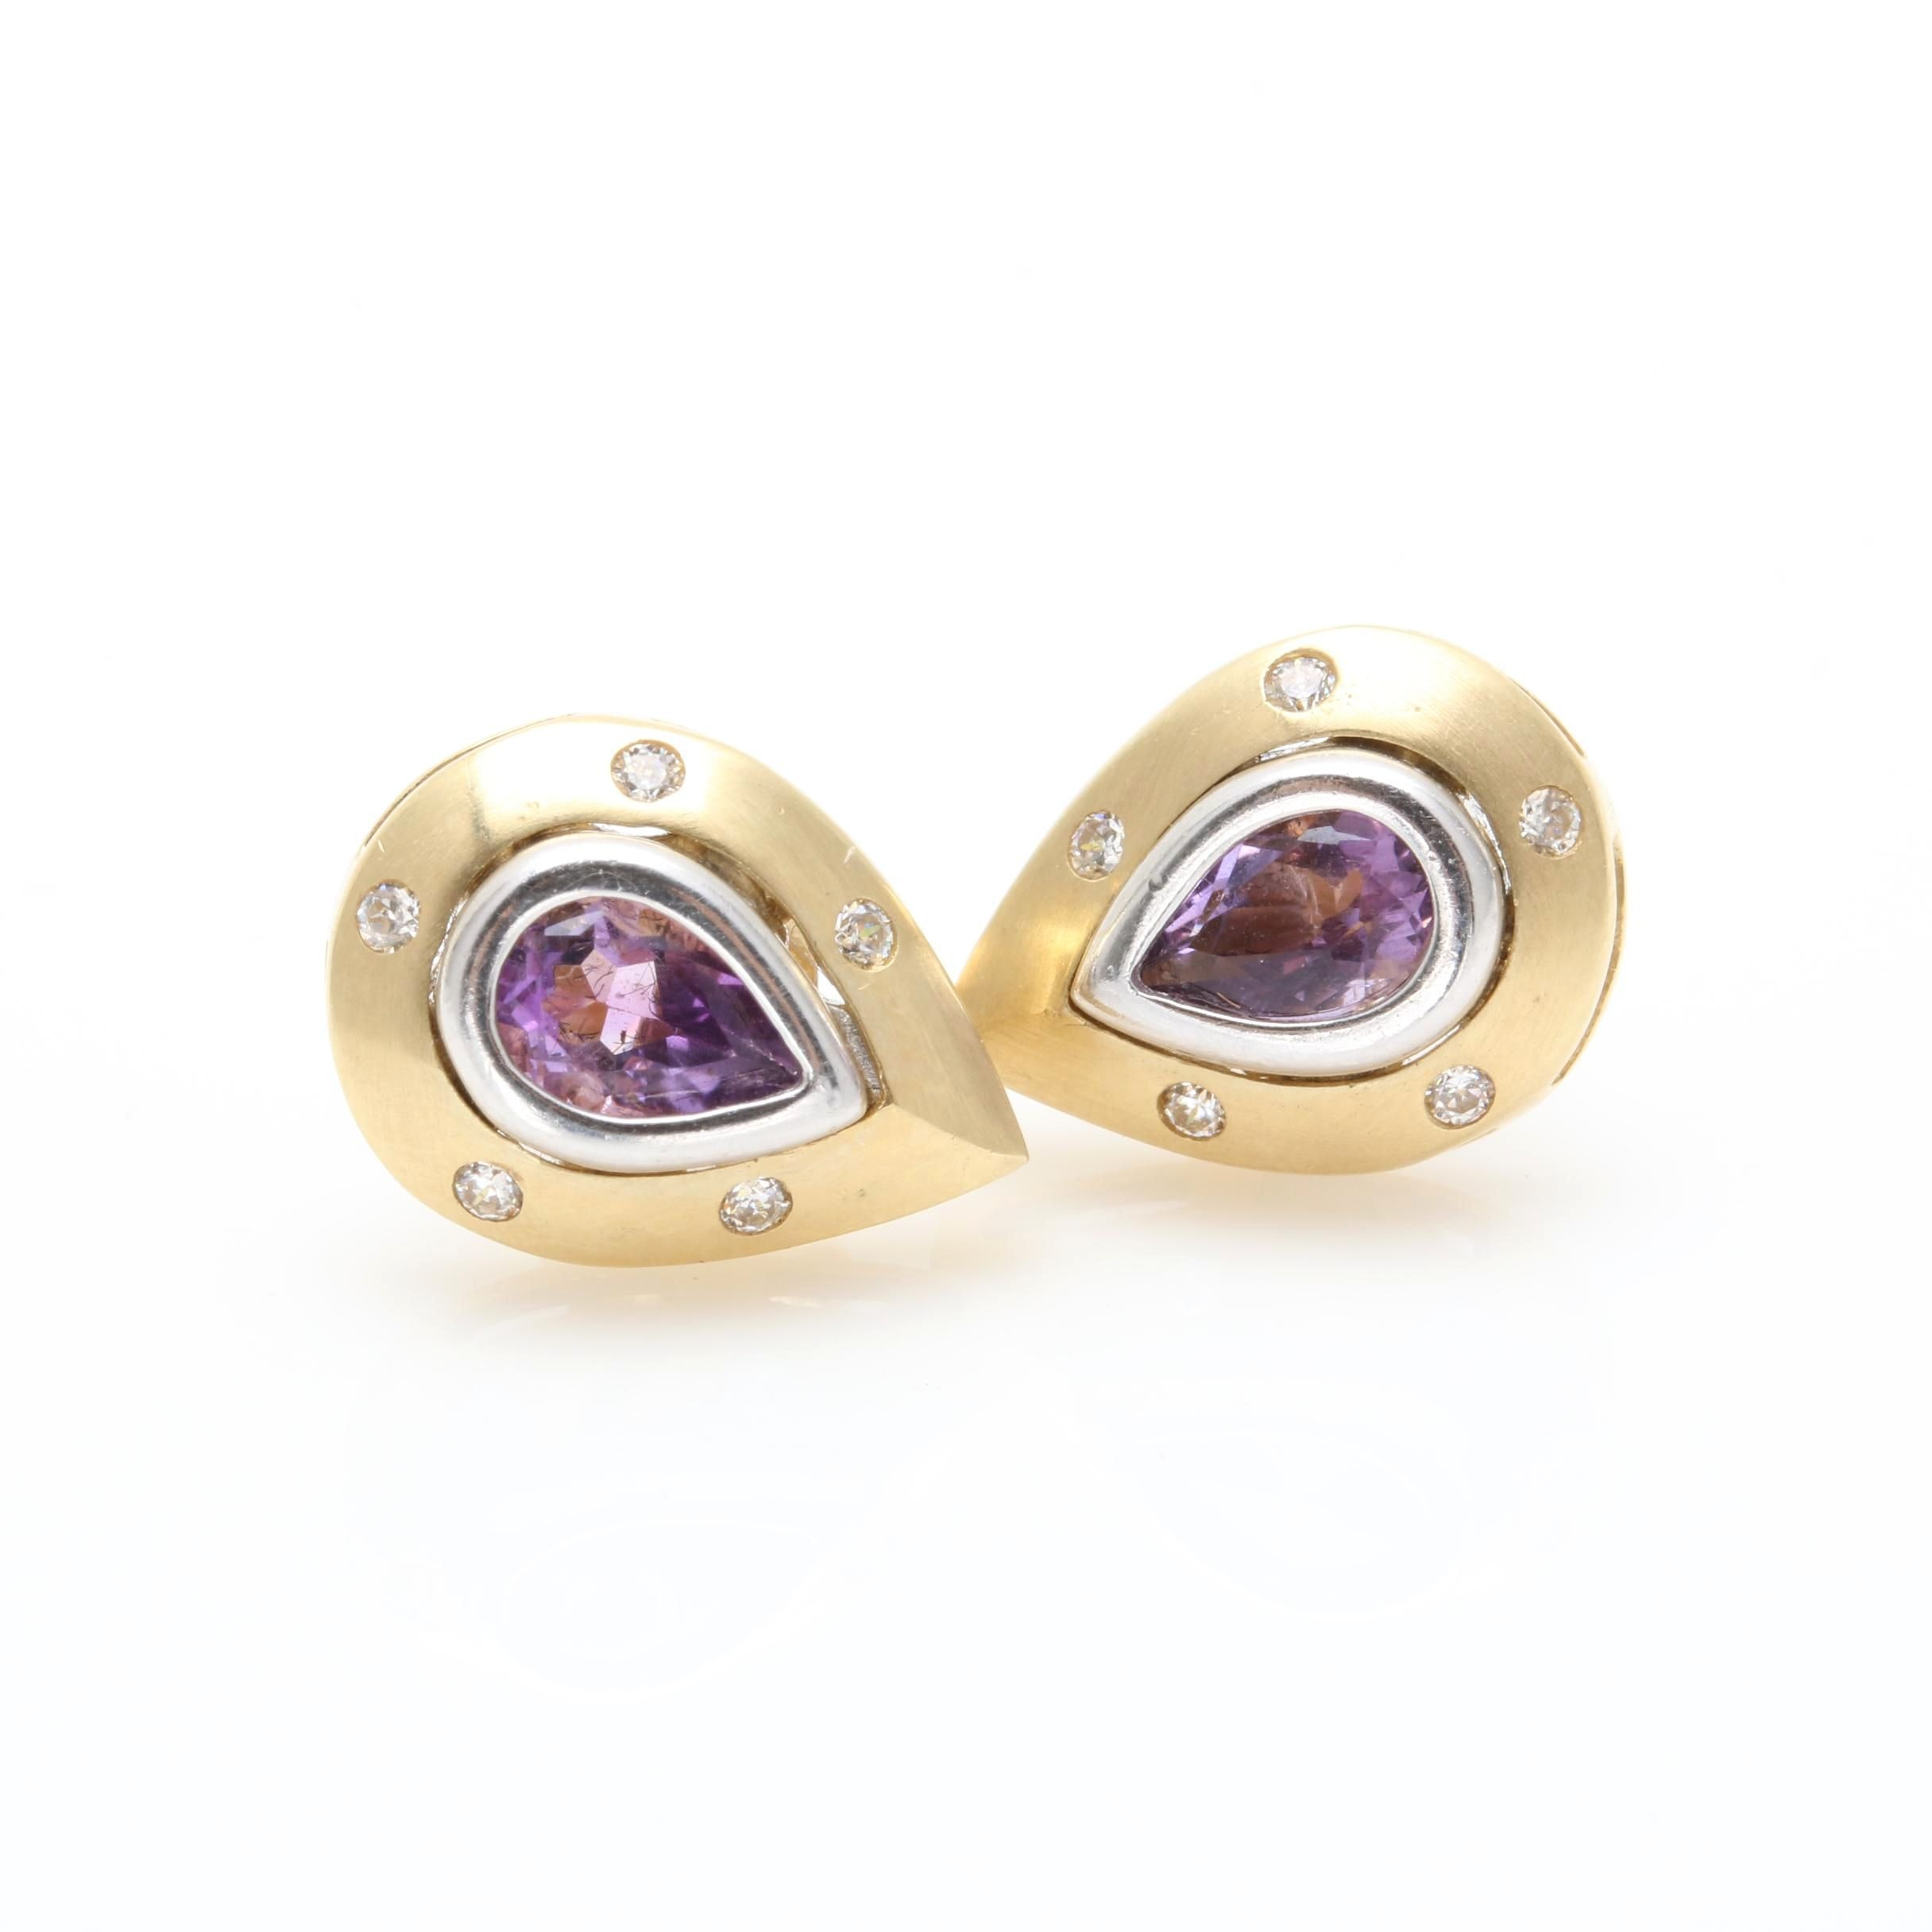 14K Yellow Gold Amethyst and Cubic Zirconia Earrings With White Gold Accents